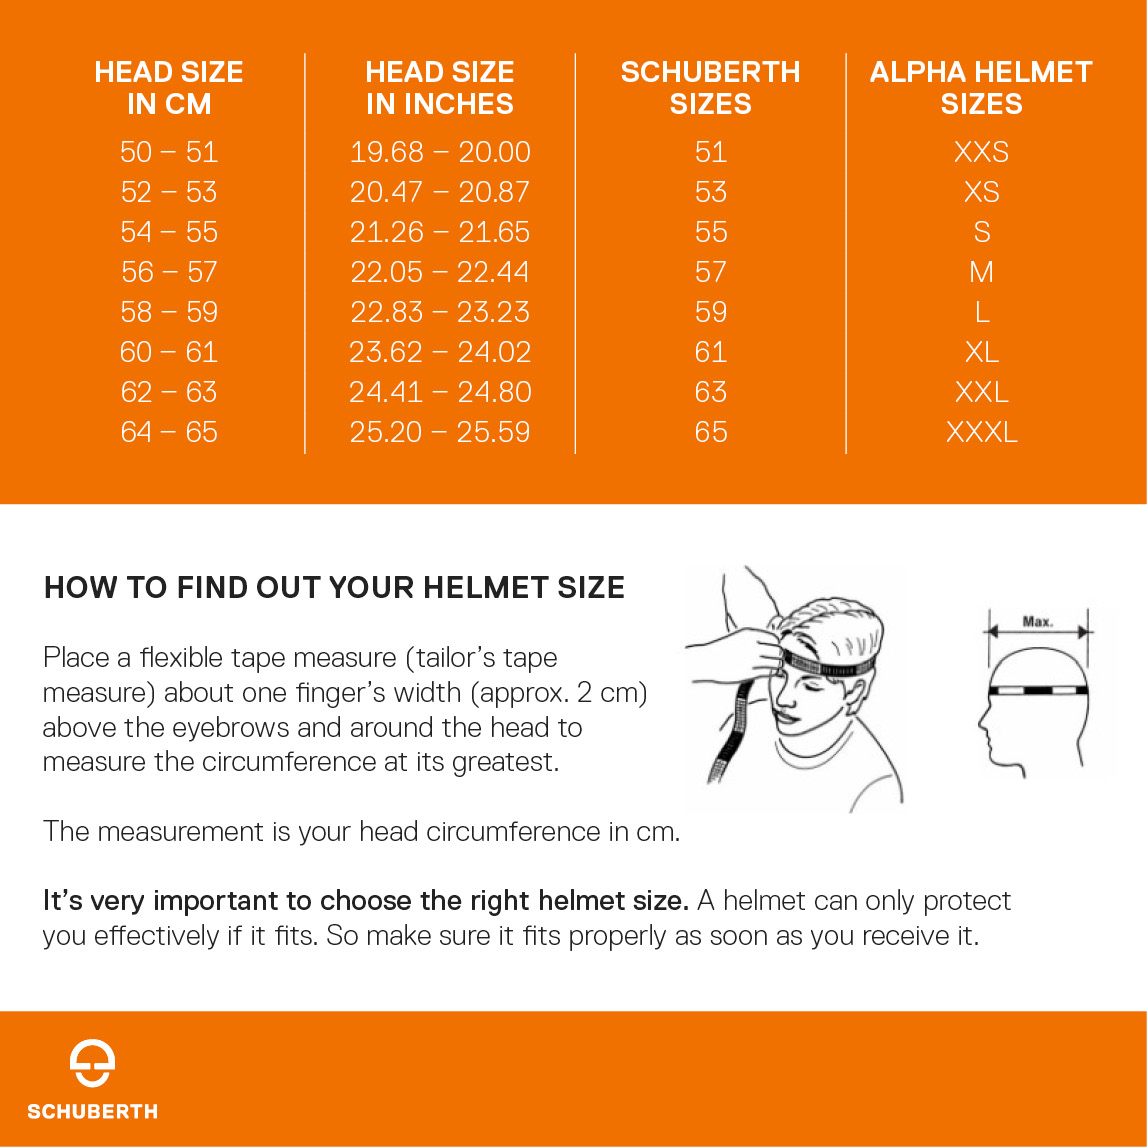 Faqs And Service Schuberth Search Results For Quotindustrial Electronic Repair Sales 8009502349 Its Also A Good Idea To Spend About 45 Minutes Wearing The Helmet In Store Thats Only Way Gauge Whether Is Right Size